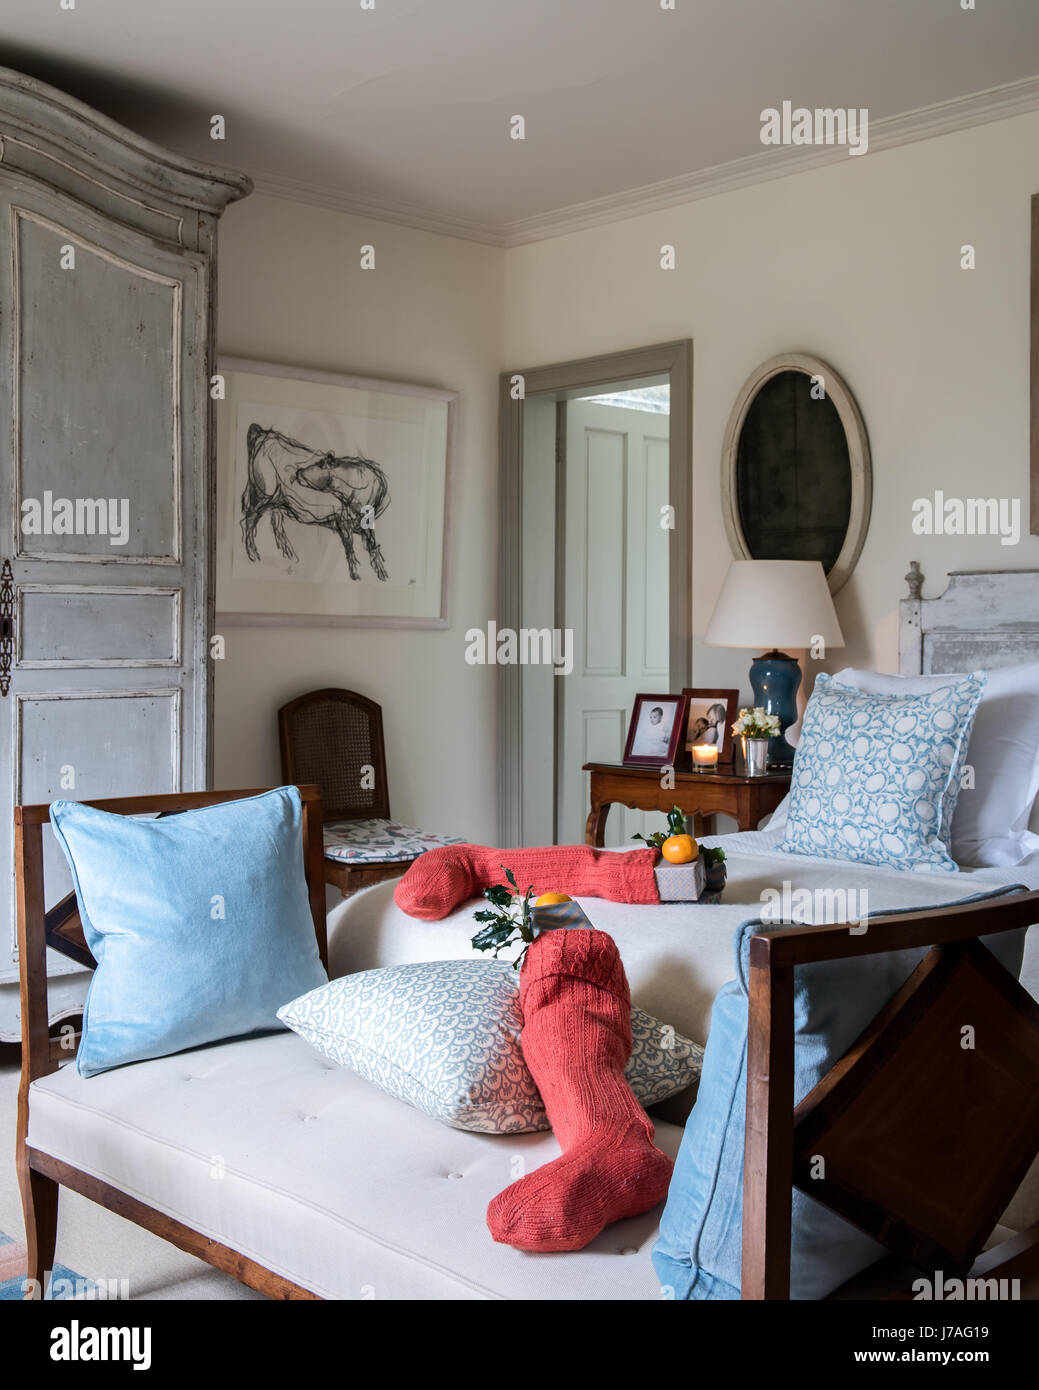 Christmas stocking on antique banquette in elegant bedroom. The charcoal drawing of a cow is by artist Jason Gathorne - Stock Image